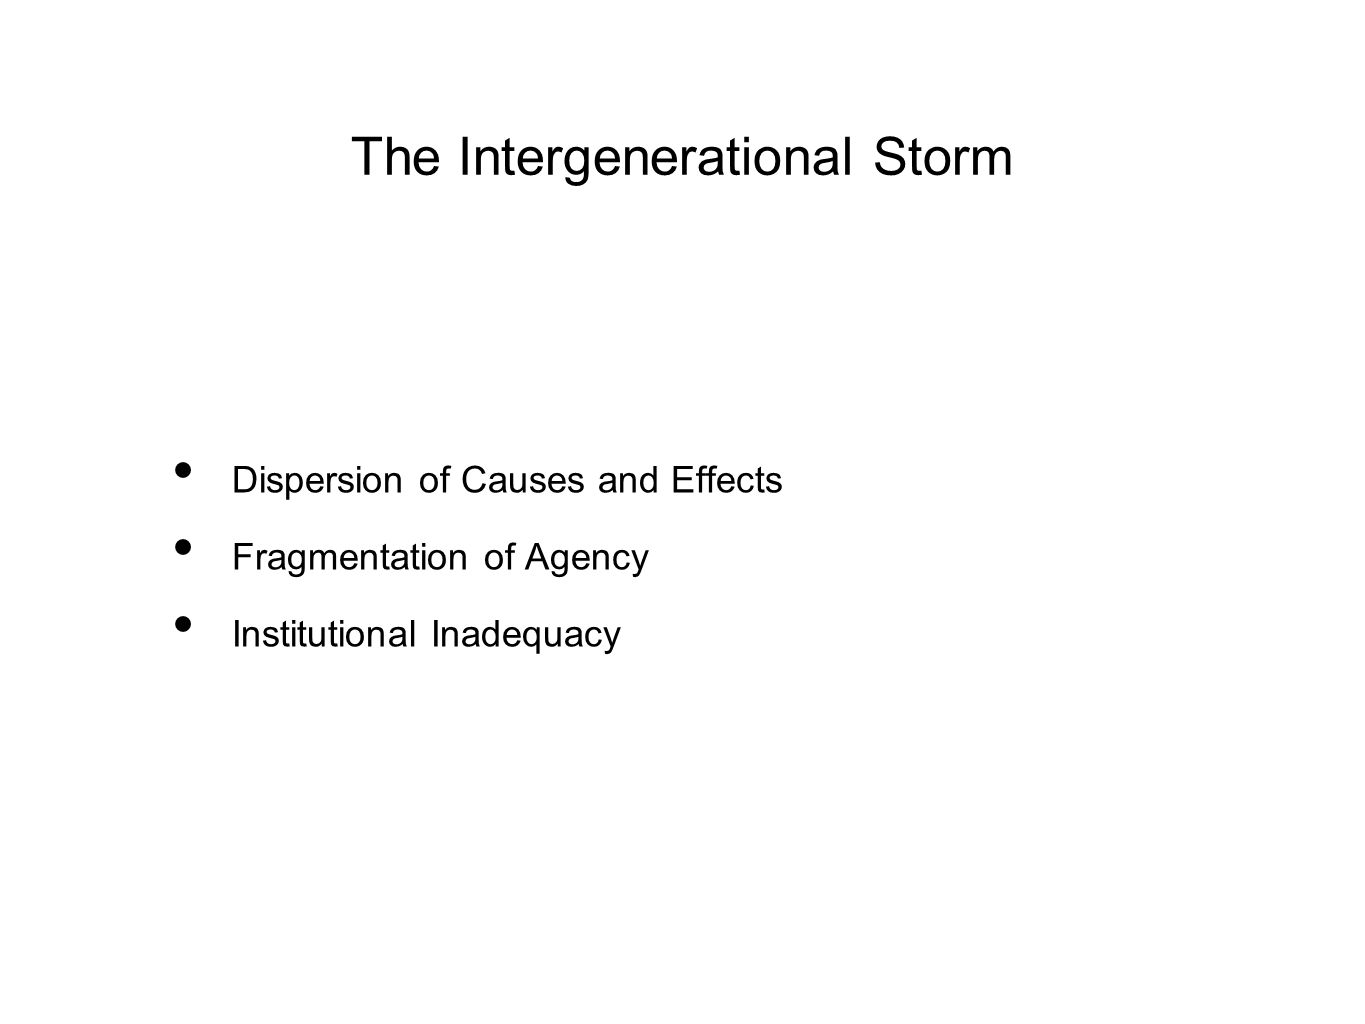 The Intergenerational Storm Dispersion of Causes and Effects Fragmentation of Agency Institutional Inadequacy